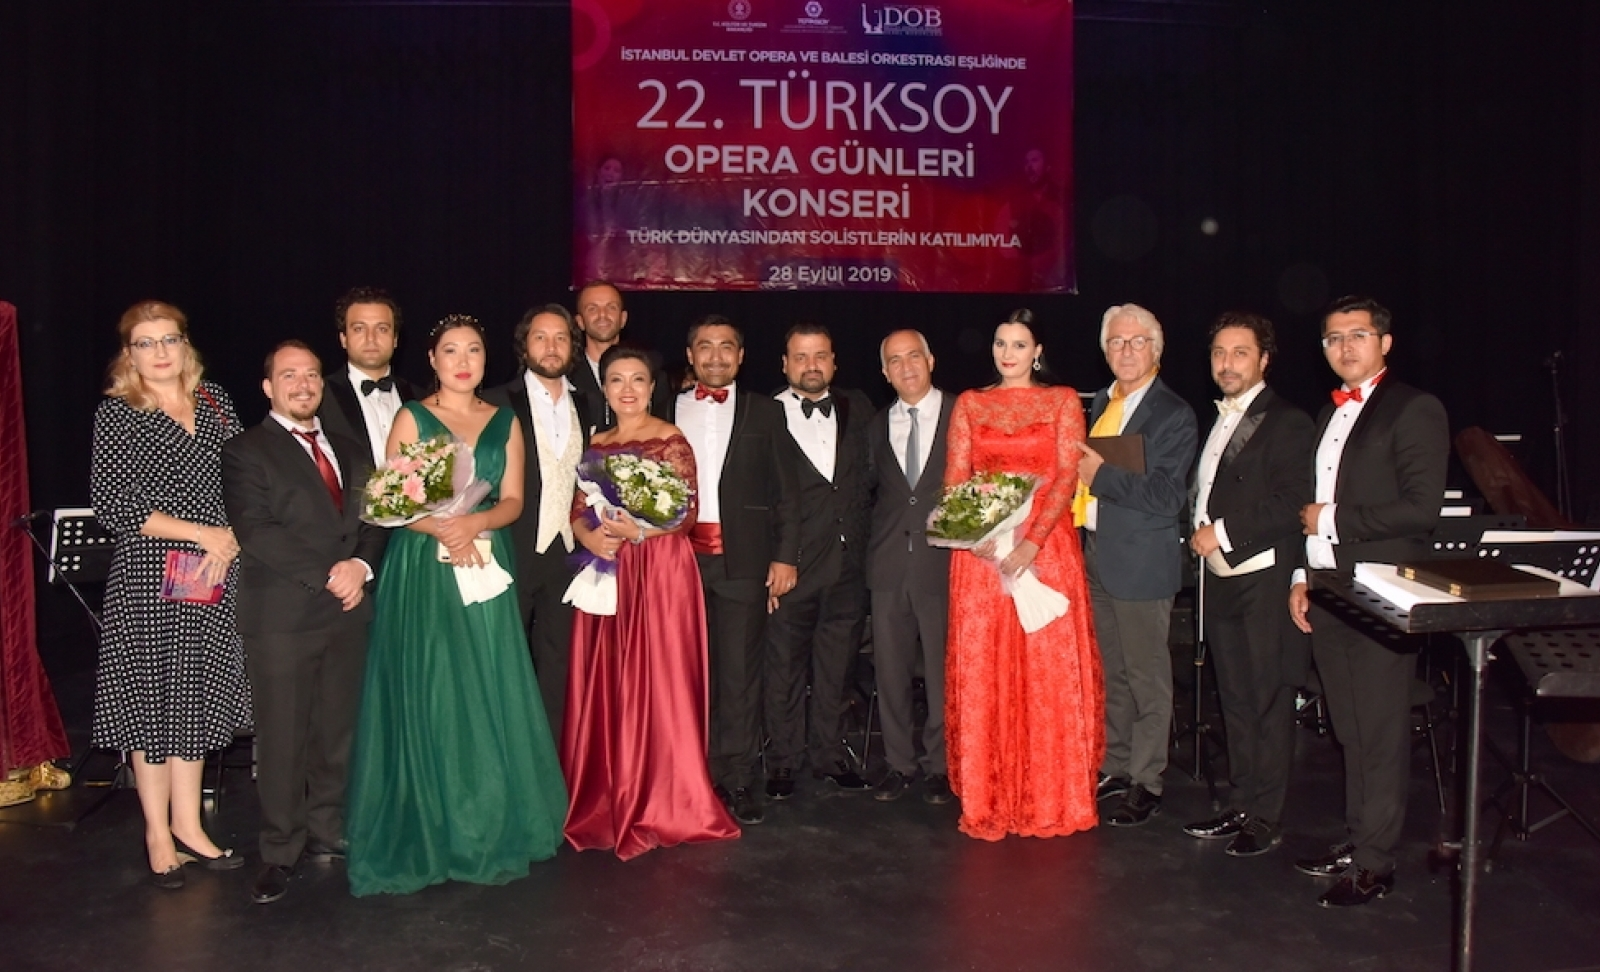 22nd Opera Days of TURKSOY